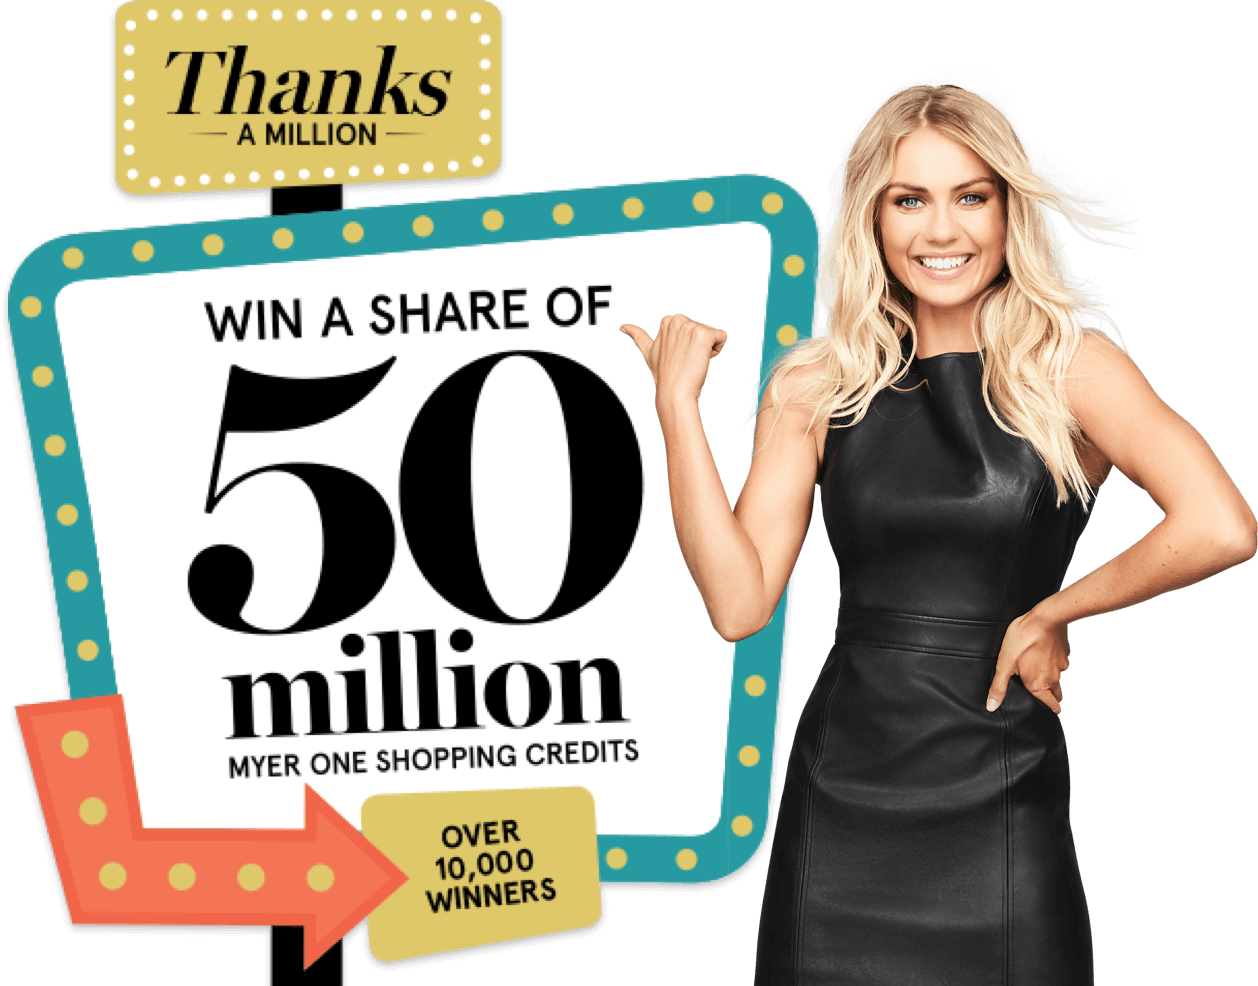 Win a share of 50 million MYER one shopping credits